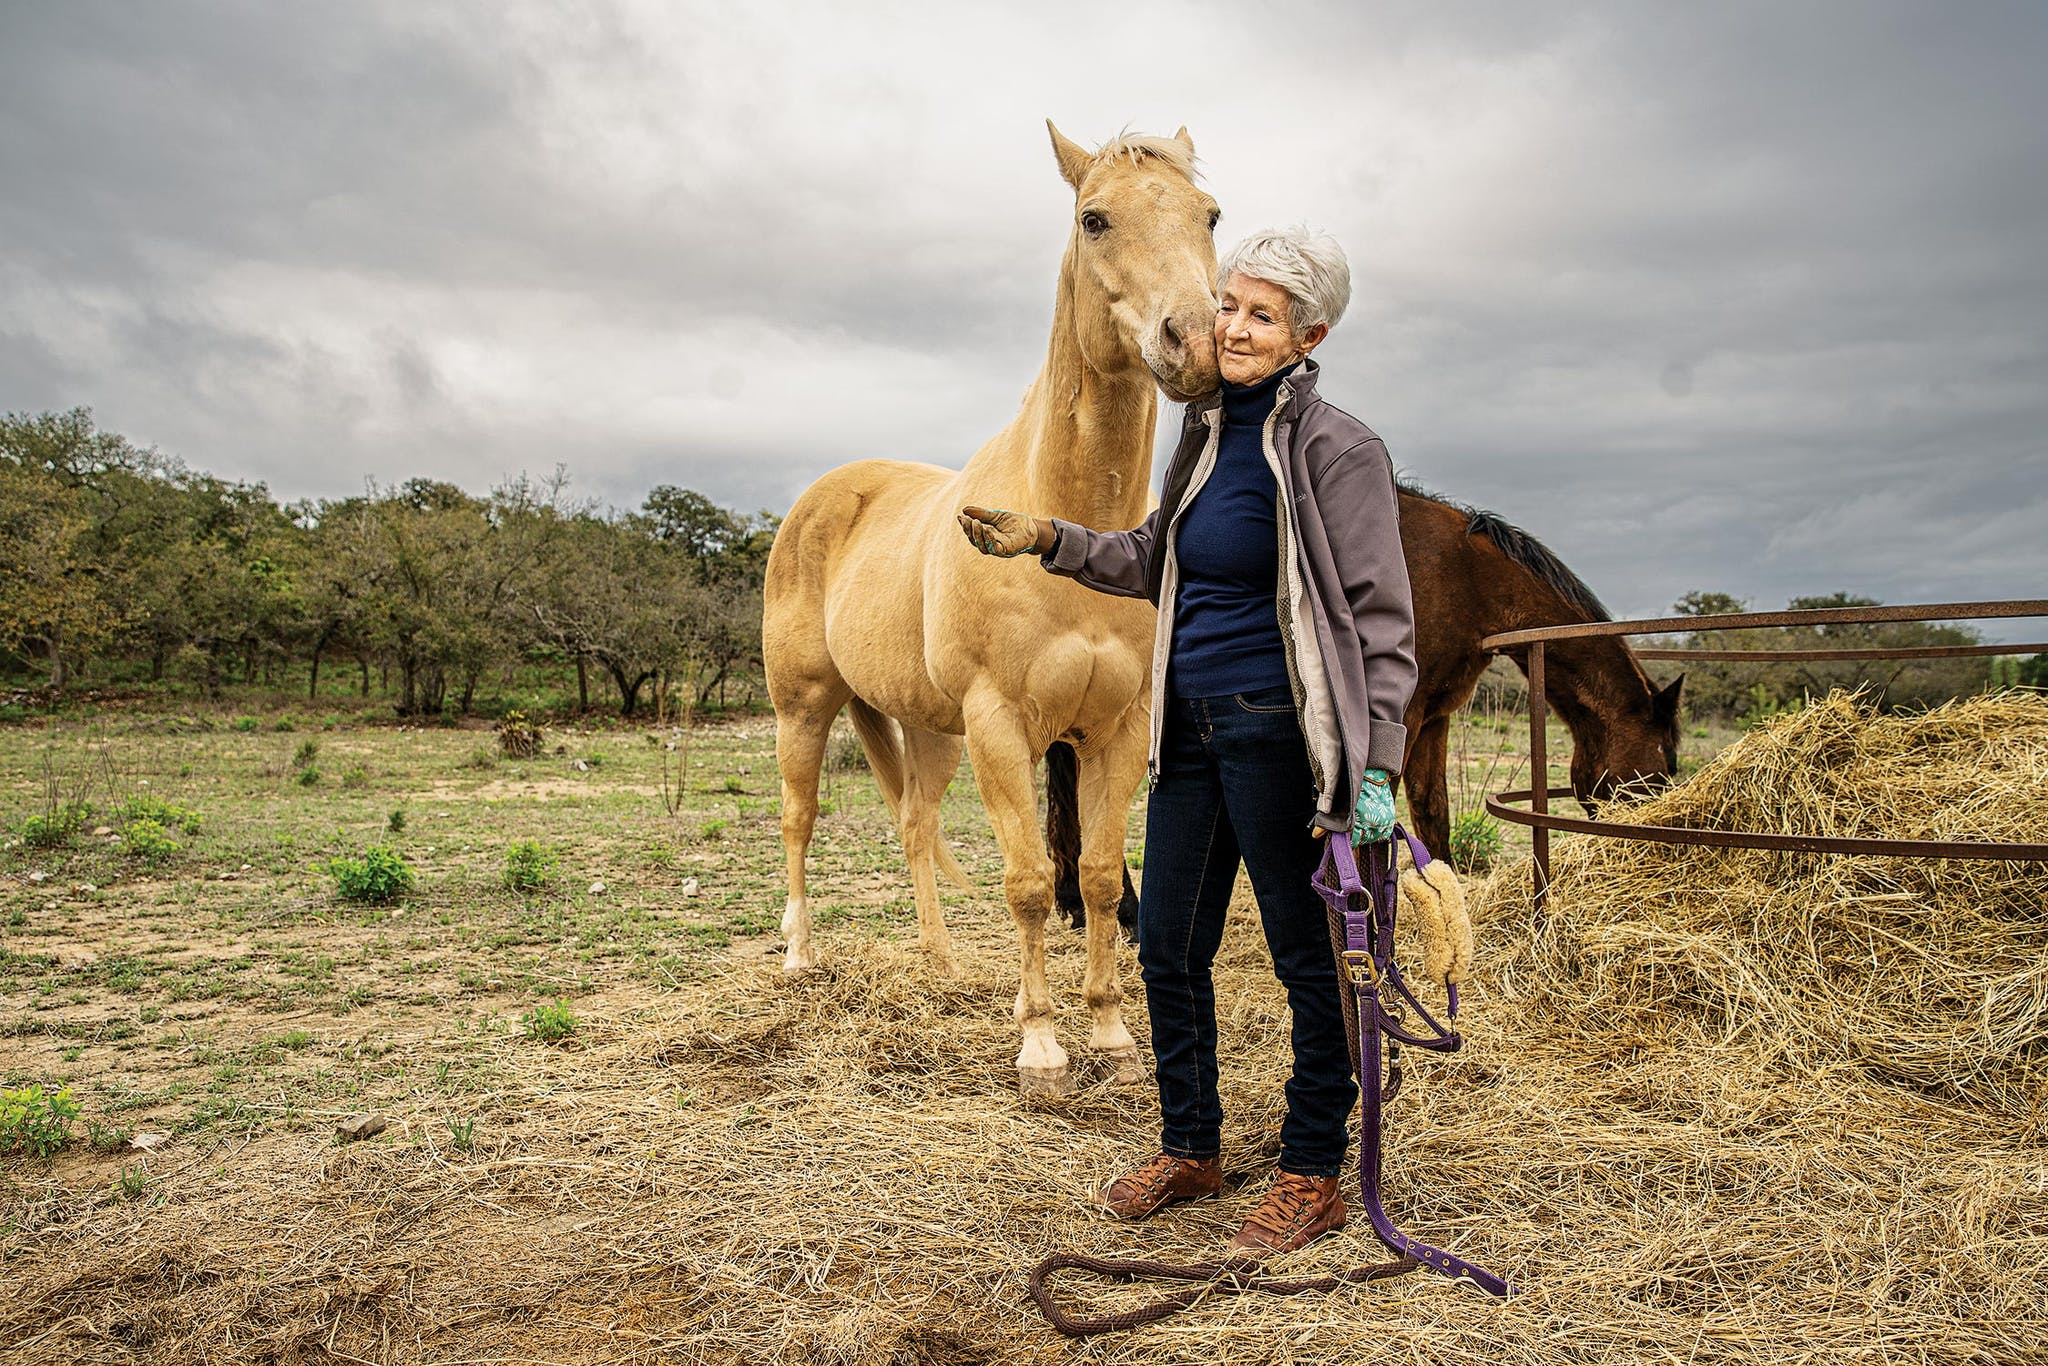 Paulette Jiles with her horses at her home, in Utopia, on March 20, 2020.